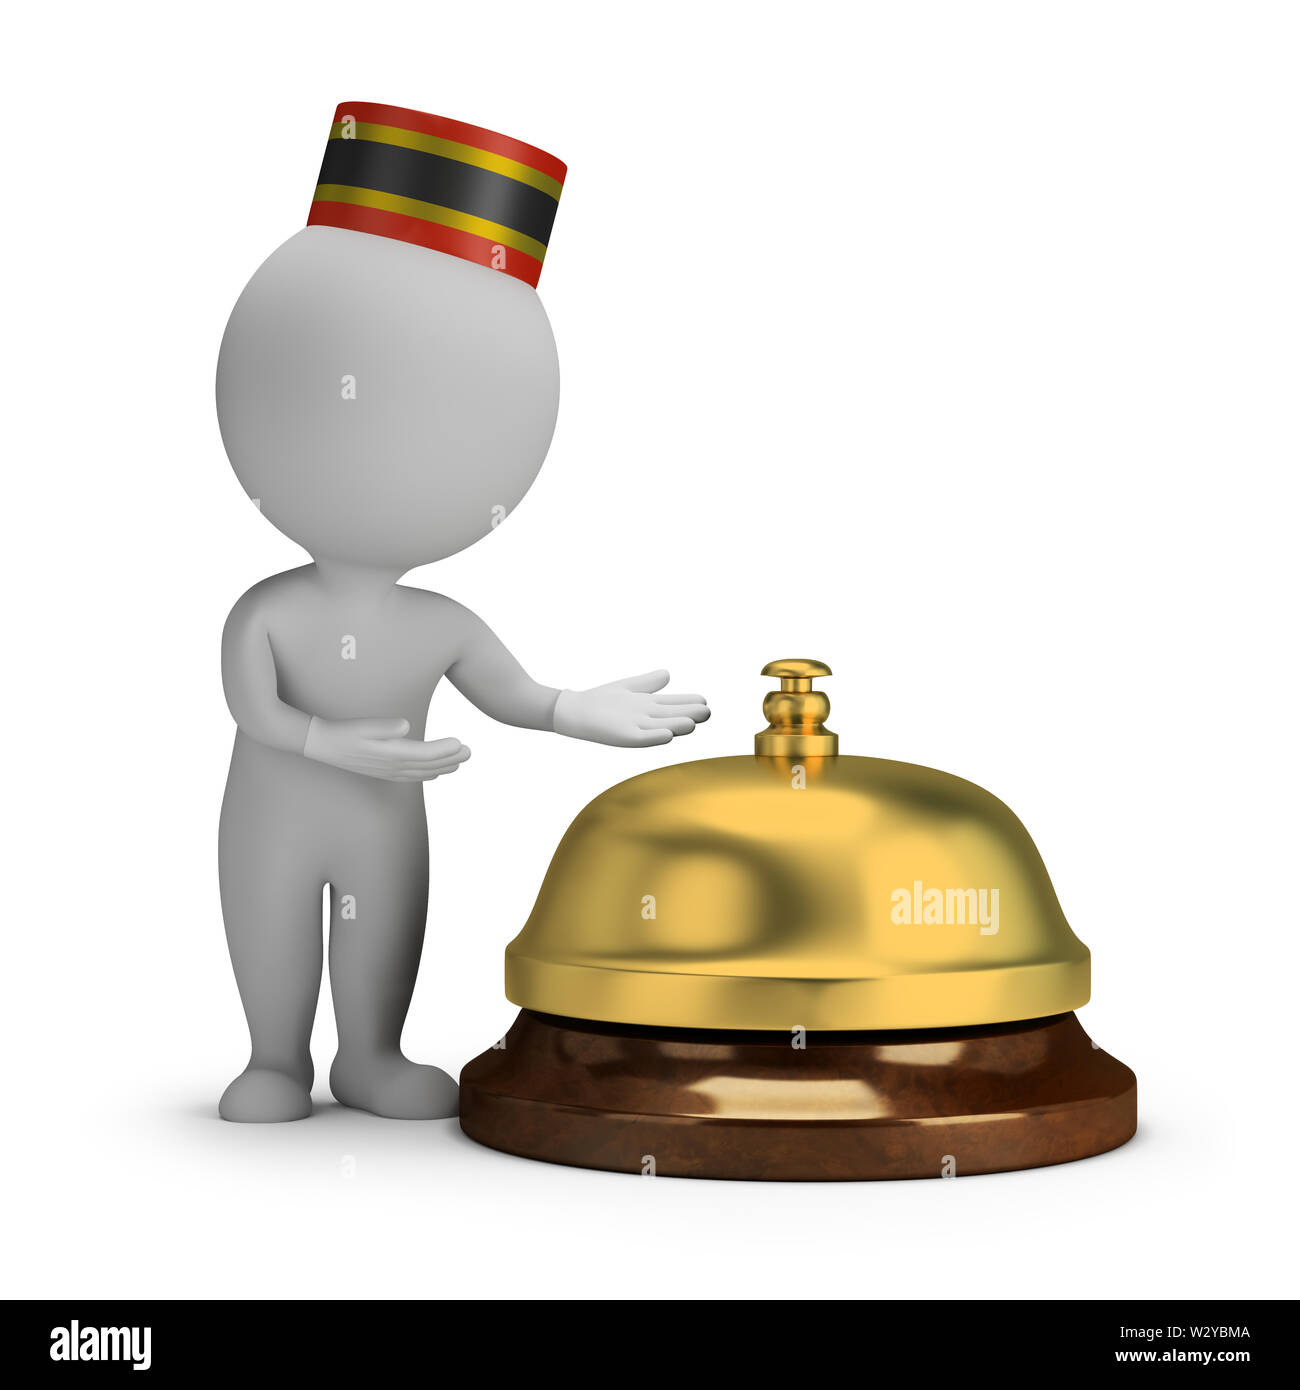 3d small person - bellboy and service bell. 3d image. White background. - Stock Image